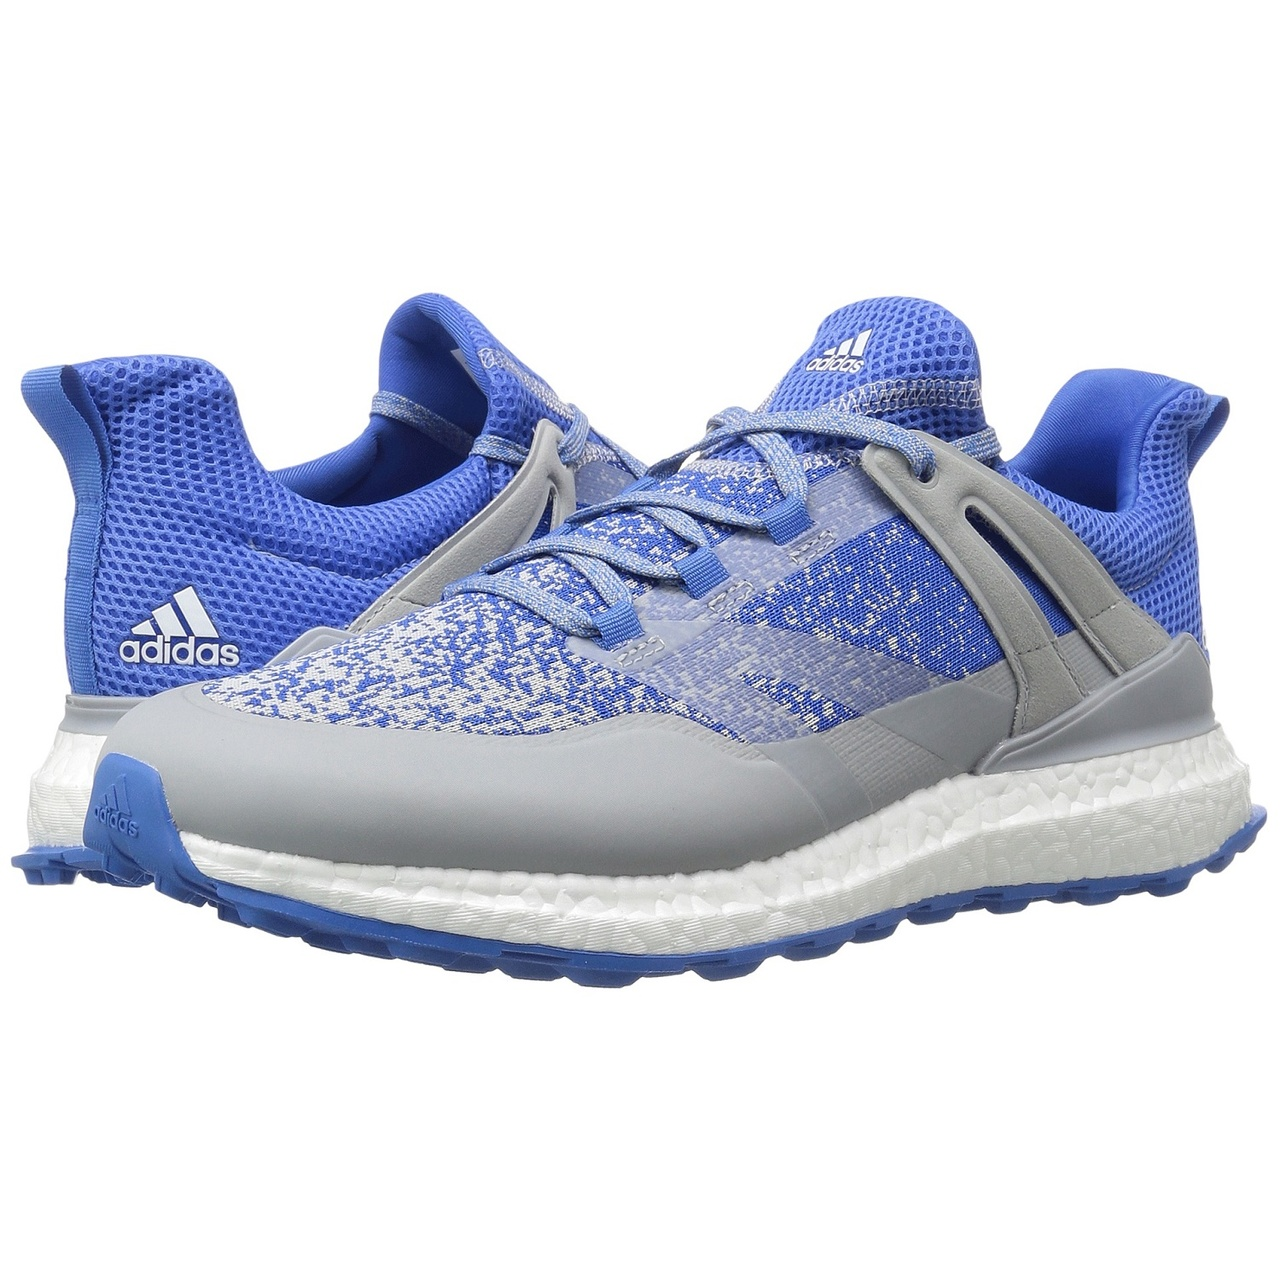 finest selection c227d 64888 adidas Crossknit Boost Mens Spikeless Golf Shoes - OnixBlast BlueWhite